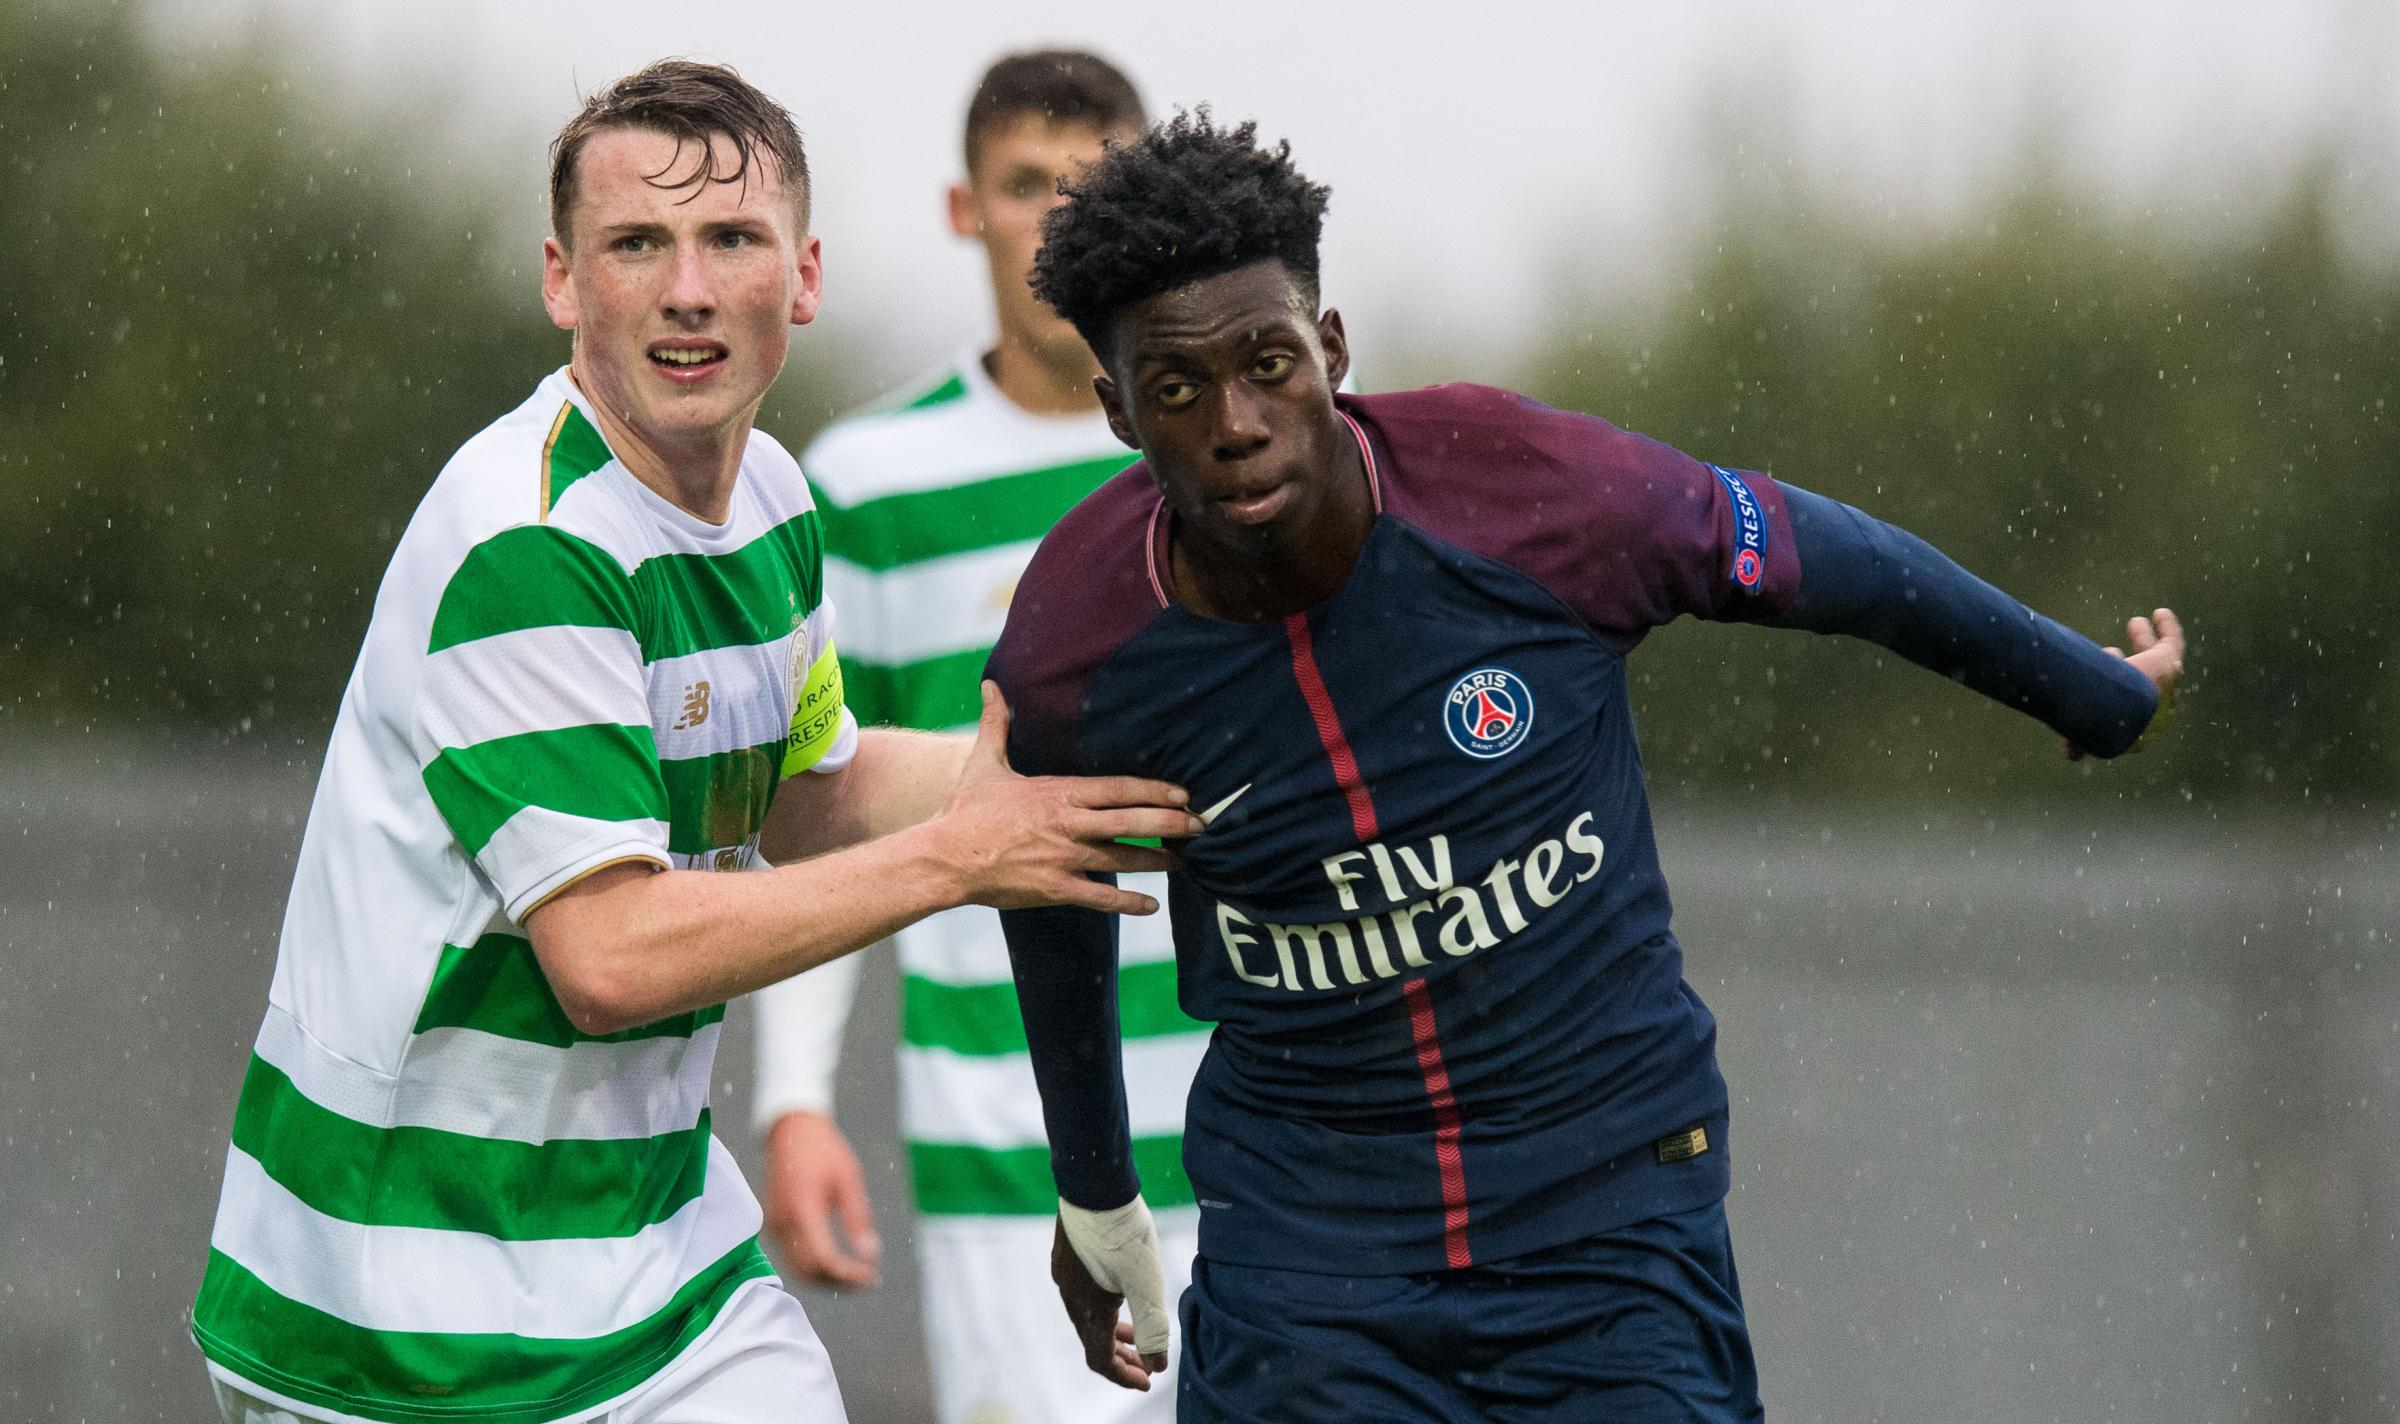 12/09/17 UEFA YOUTH LEAGUE.CELTIC U19 v PSG U19 (2-3).THE YOUR RADIO 103FM STADIUM - DUMBARTON.Regan Hendry of Celtic (left) in action against Timothy Weah of PSG.